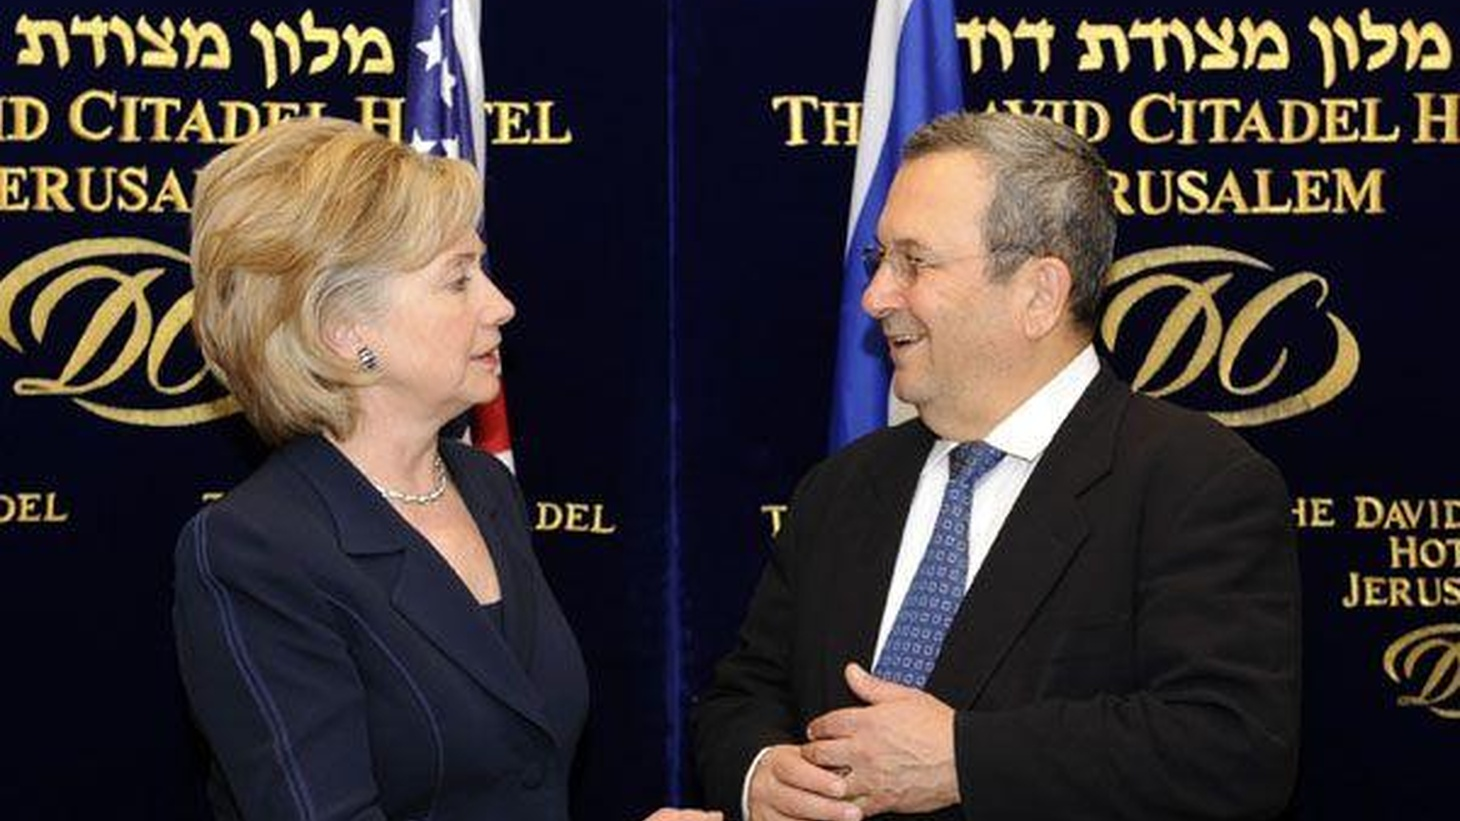 """In the Middle East, Hillary Clinton has walked into the familiar buzz-saw of Arab-Israeli politics, and Congress is about to condemn the UN's """"Goldstone Report."""" What's happening to President Obama's """"new start"""" with the Muslim world? Also, Afghan President Hamid Karzai takes office, and healthcare reform and """"spiritual healing."""""""